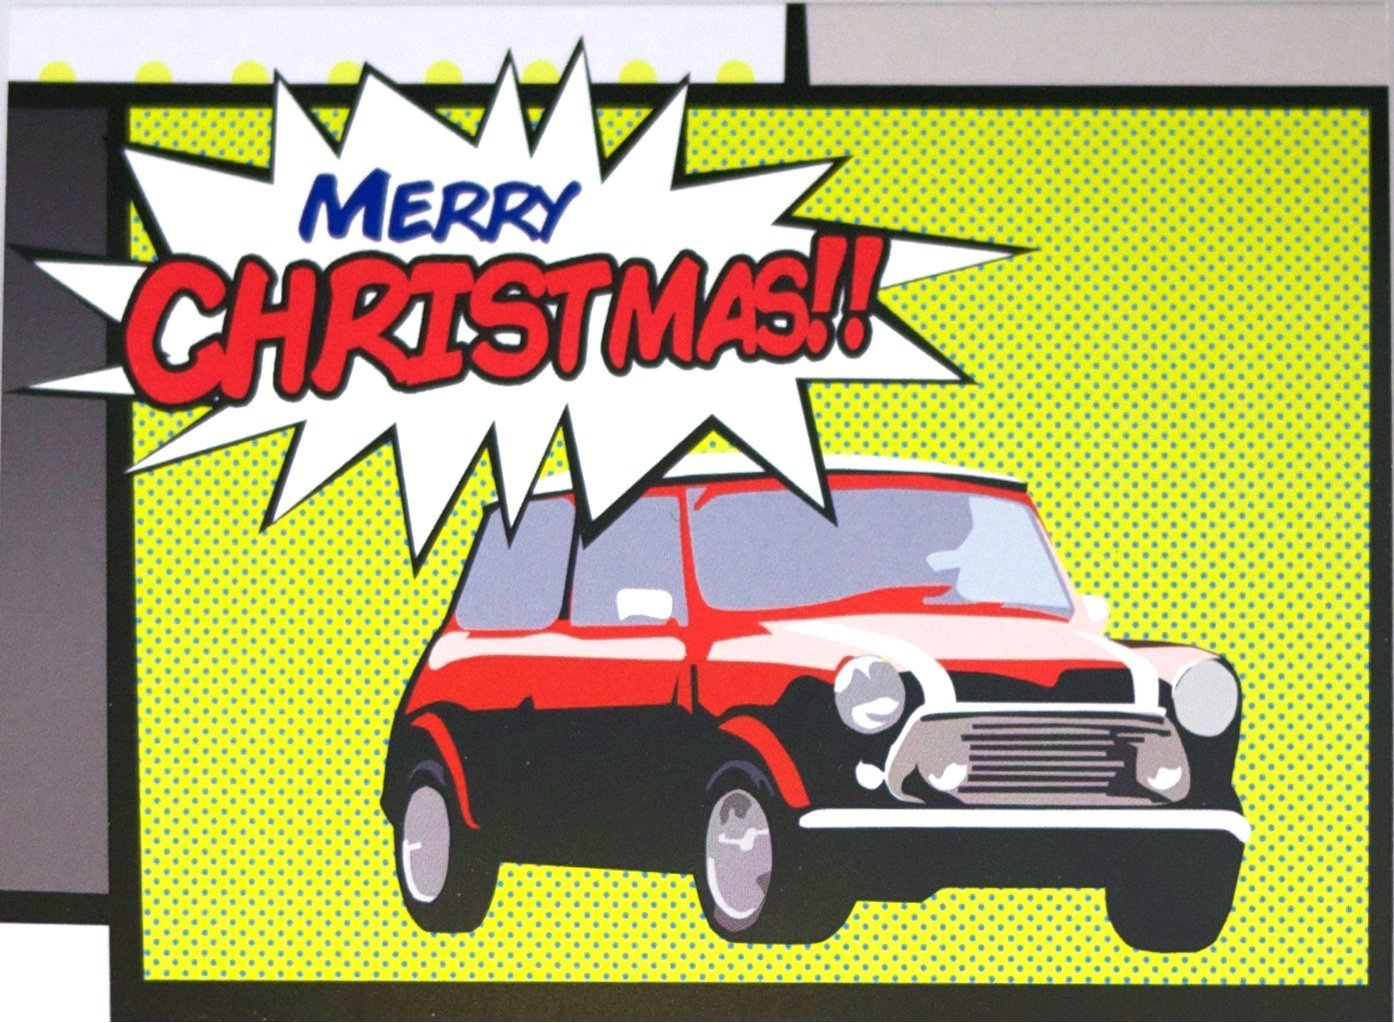 Mini Cooper classic car inspired pop art Christmas cards pack of 10 single design